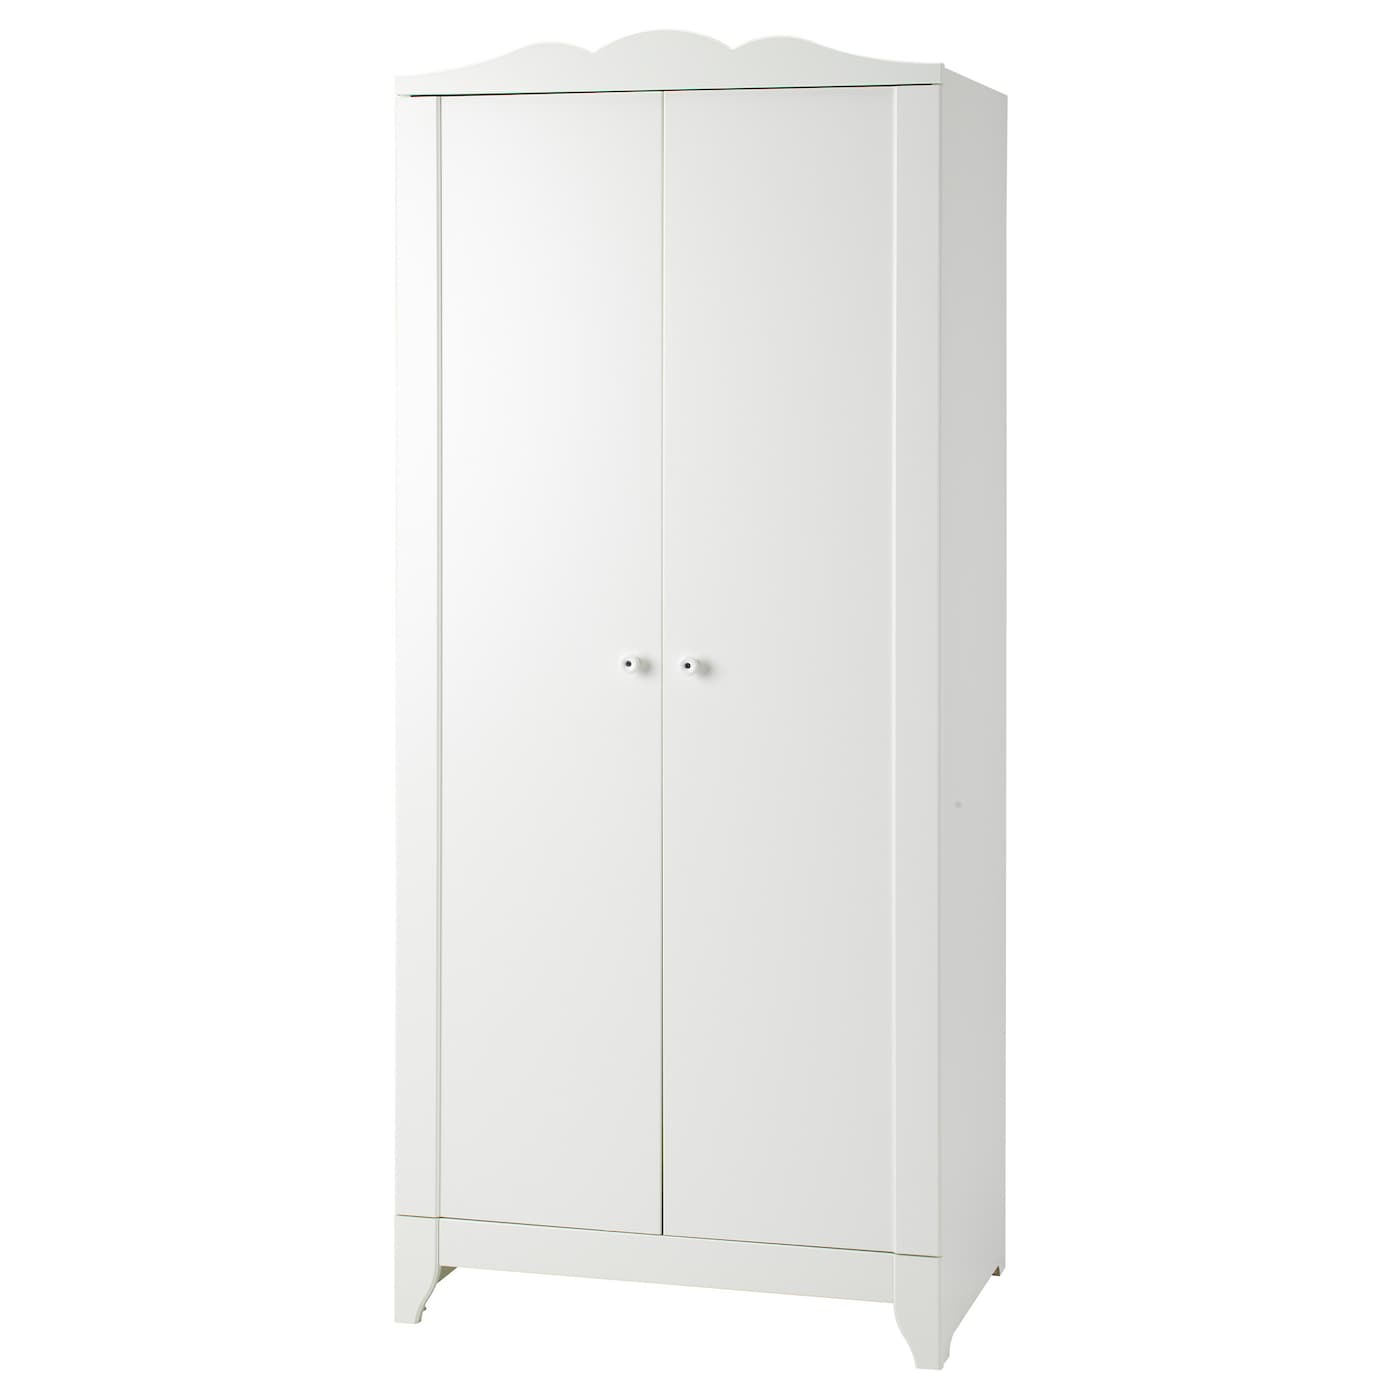 hensvik wardrobe white 75x174 cm ikea. Black Bedroom Furniture Sets. Home Design Ideas